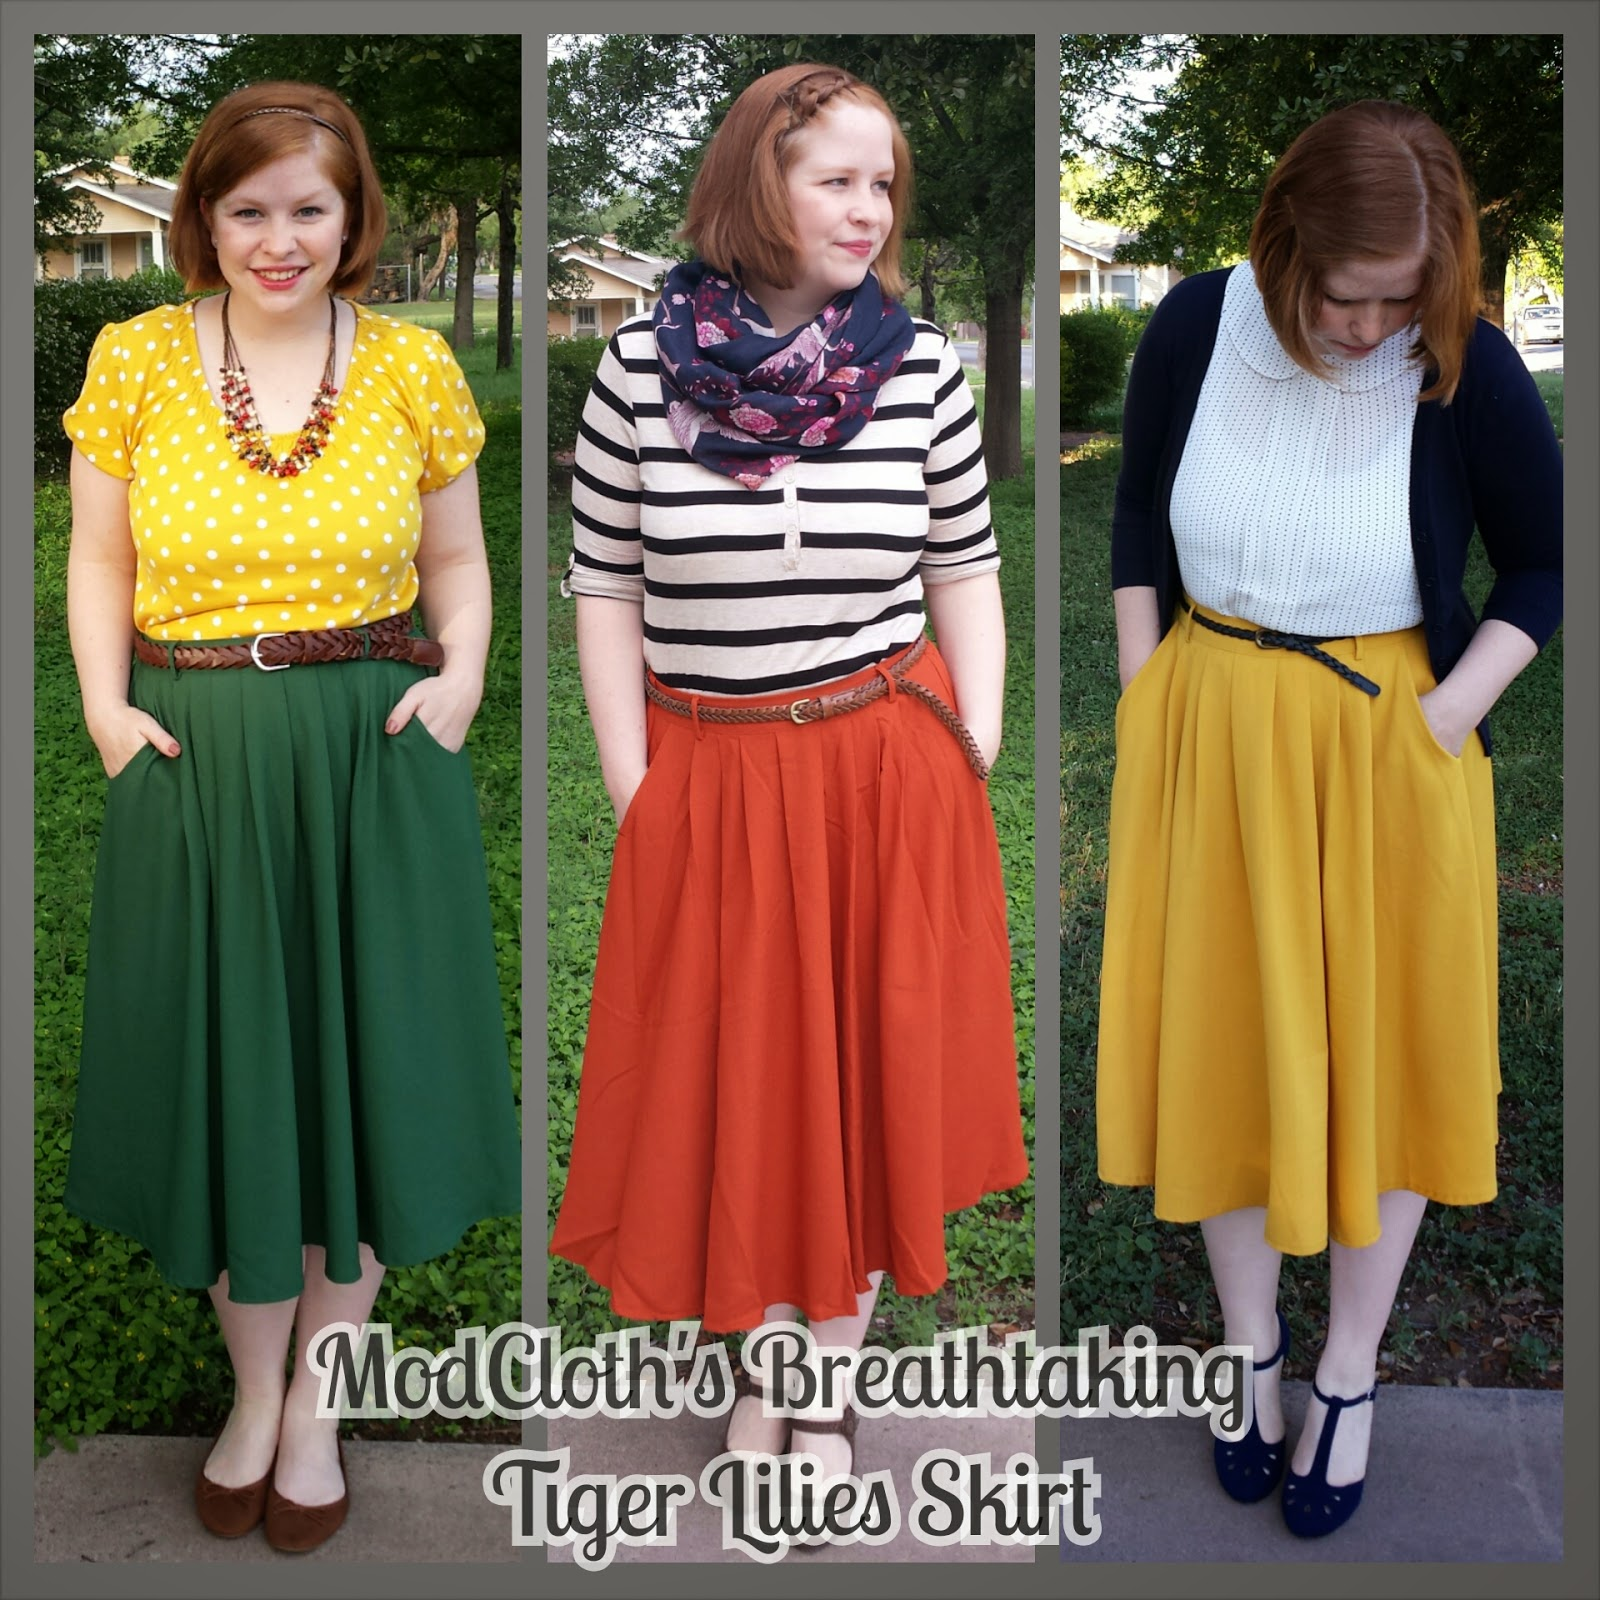 f6ca491093 Shop With Beth  Tell Me About - ModCloth s Breathtaking Tiger Lilies ...